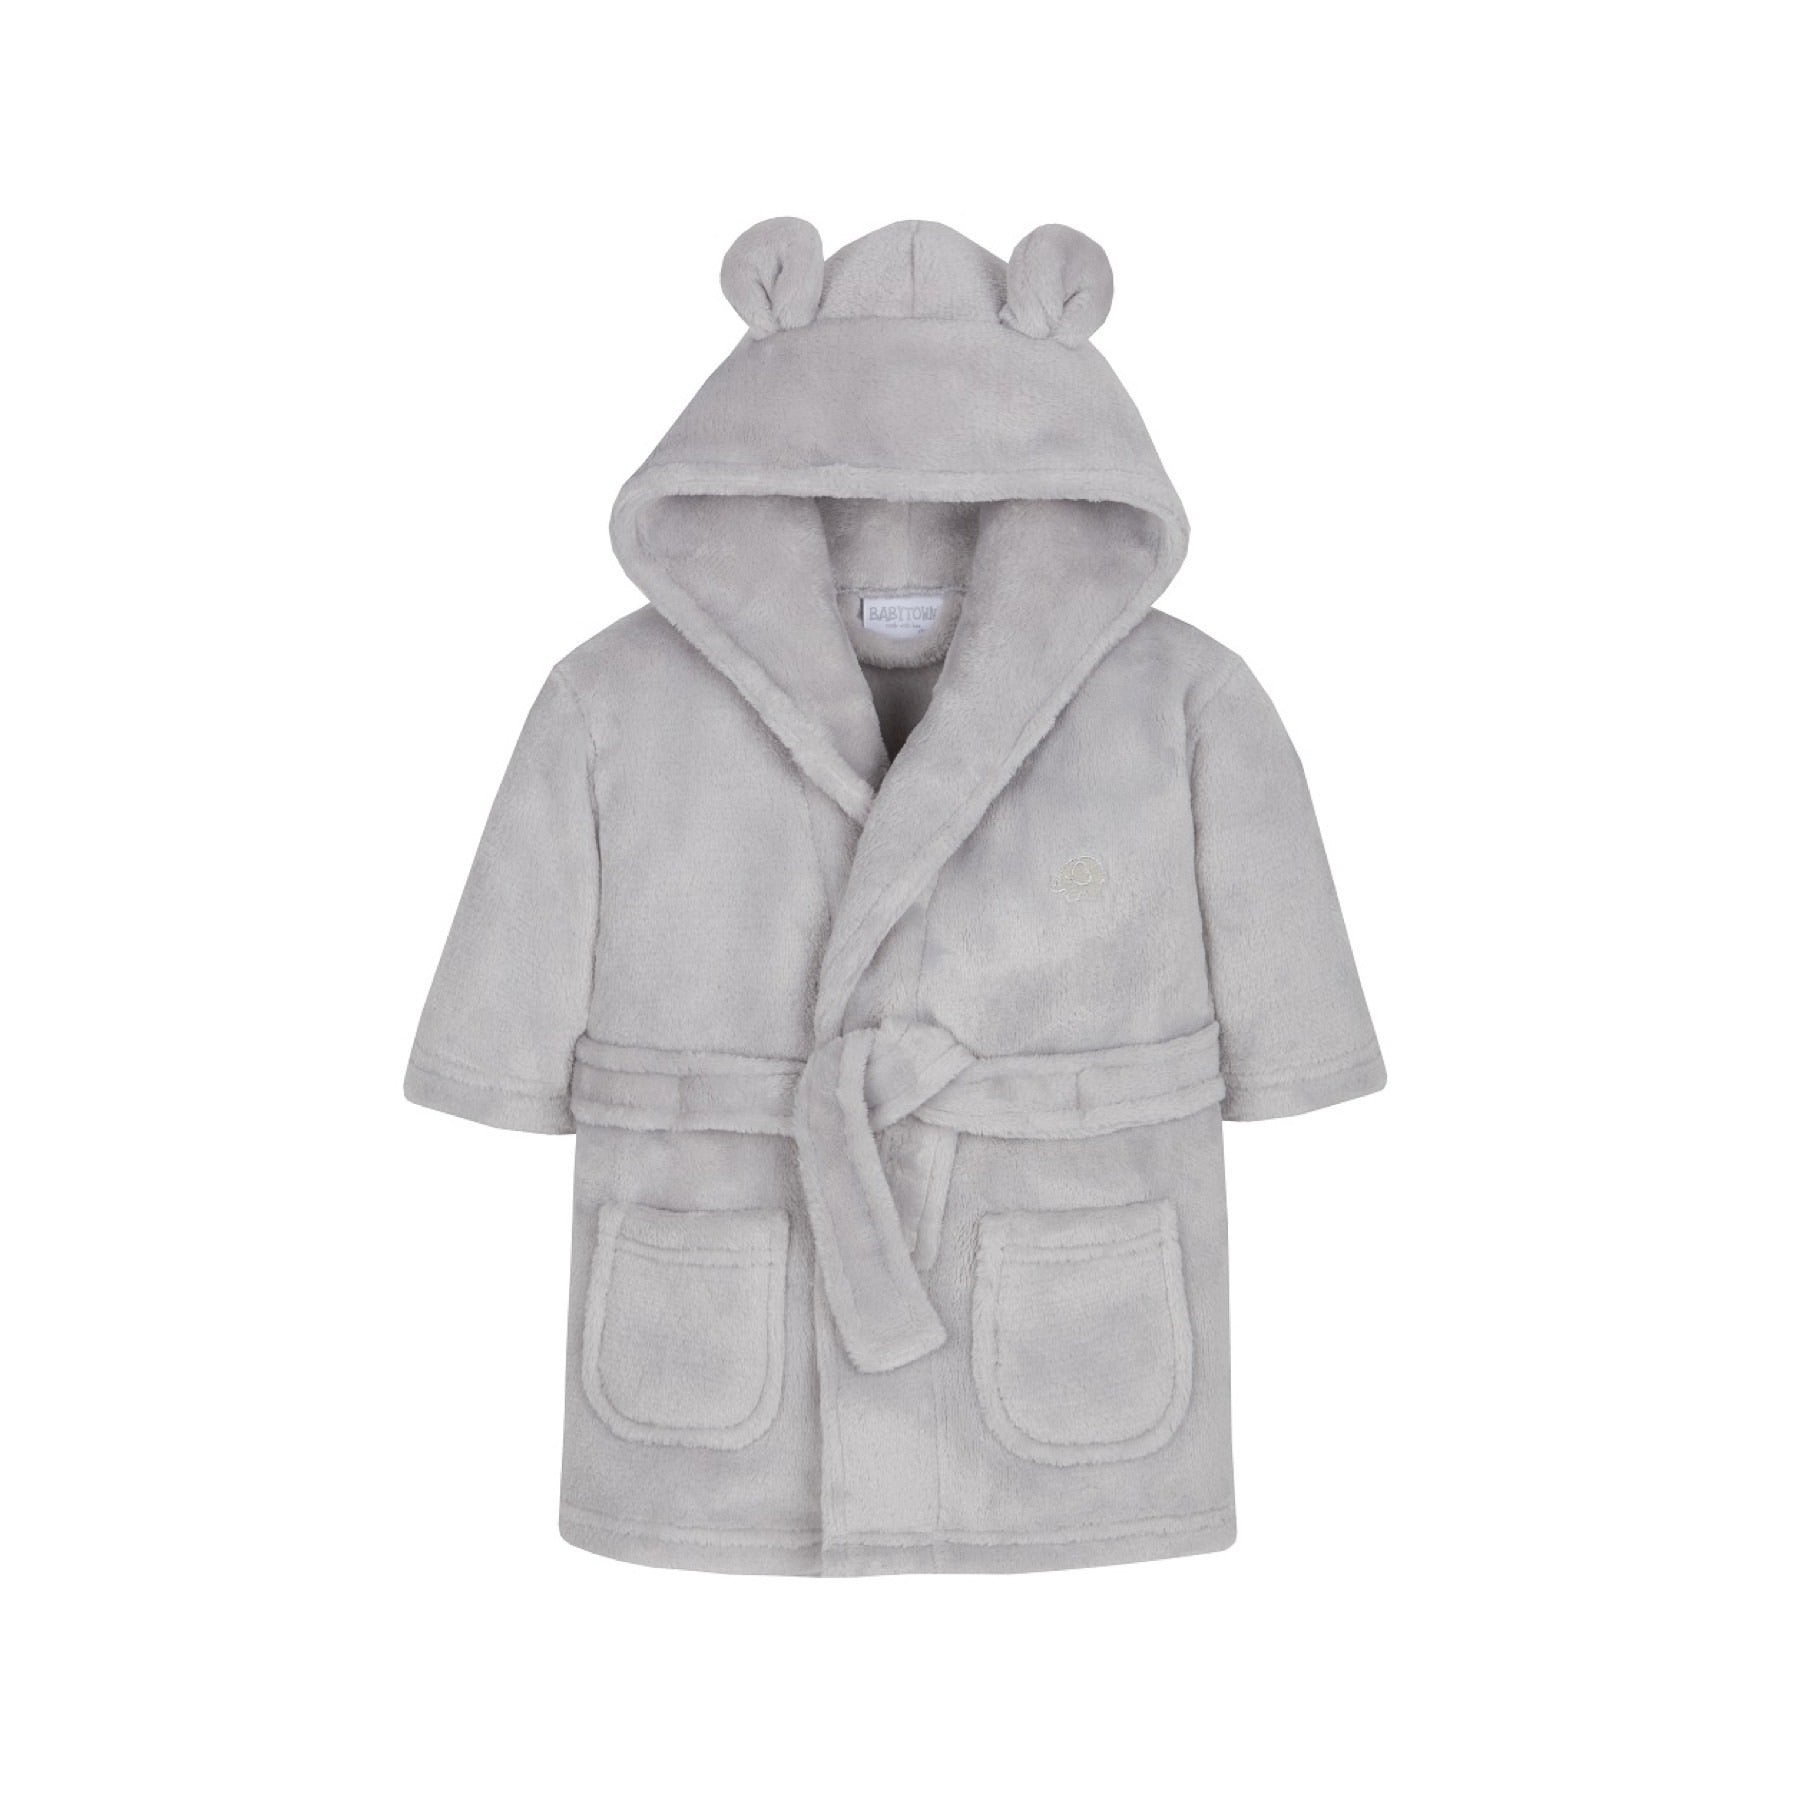 Hooded bear ear fleece grey dressing gown (0-24 months)